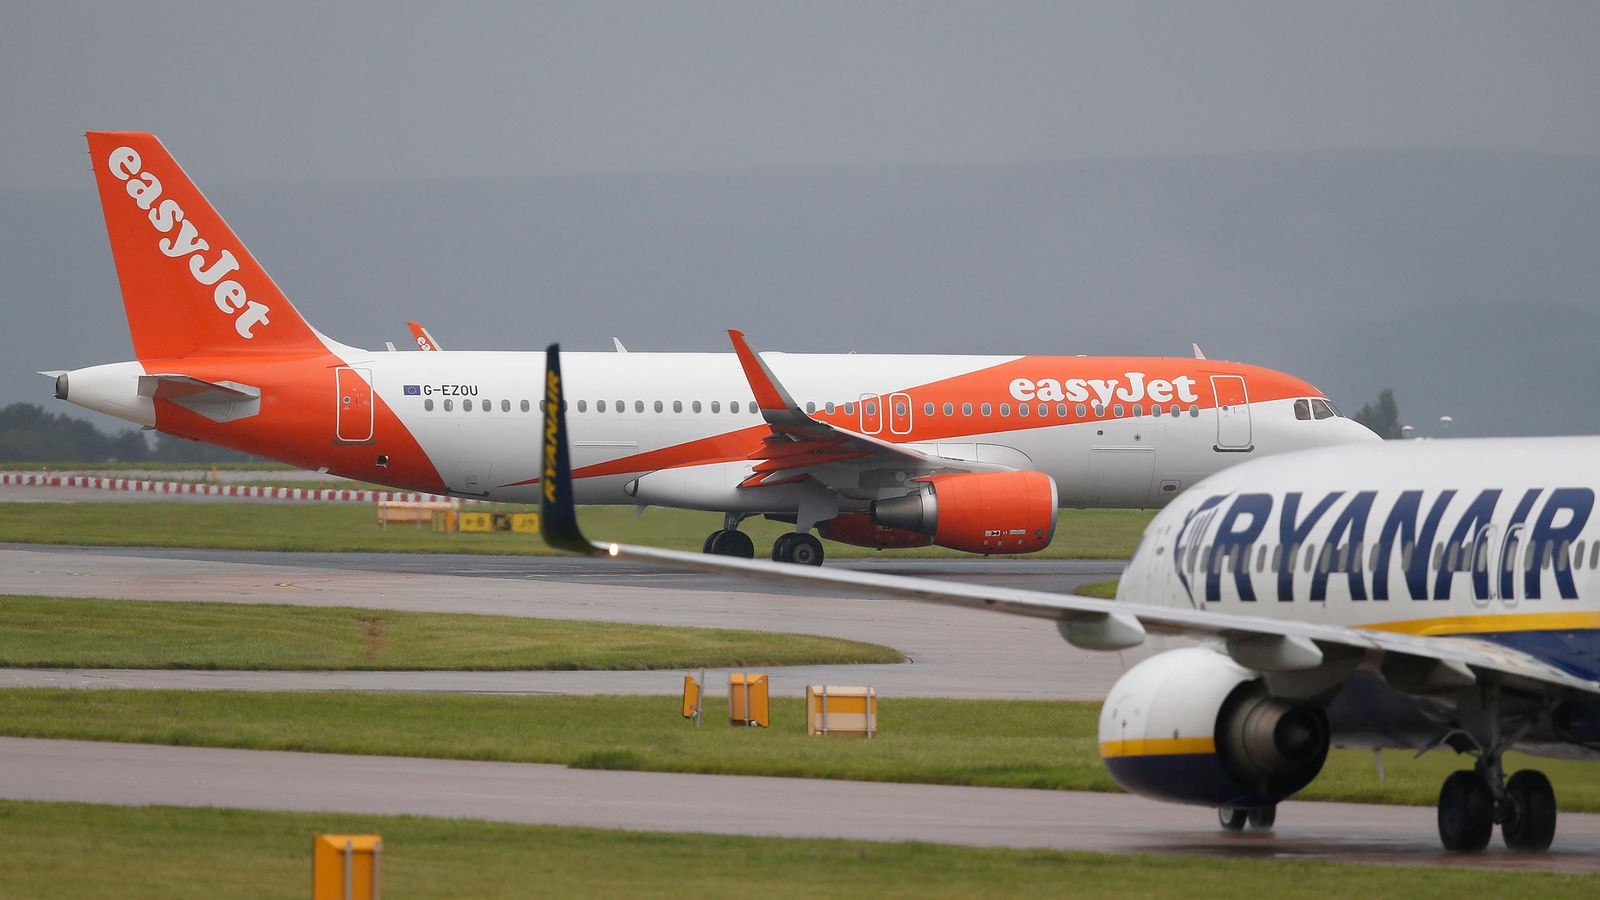 easyjet - photo #18